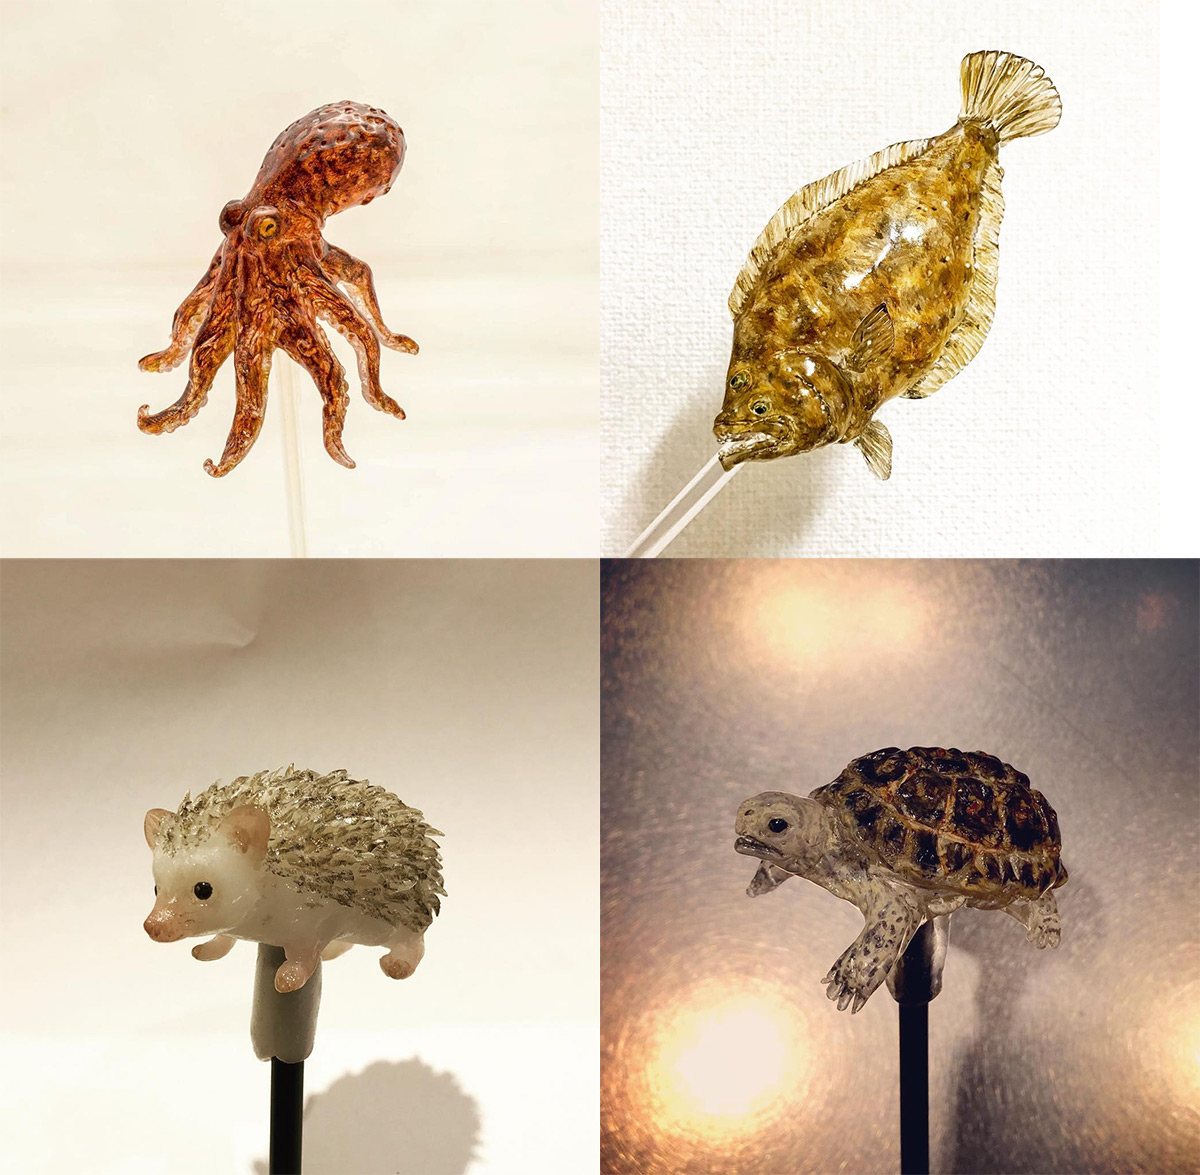 New Edible 'Amezaiku' Animal Lollipop Designs by Shinri Tezuka